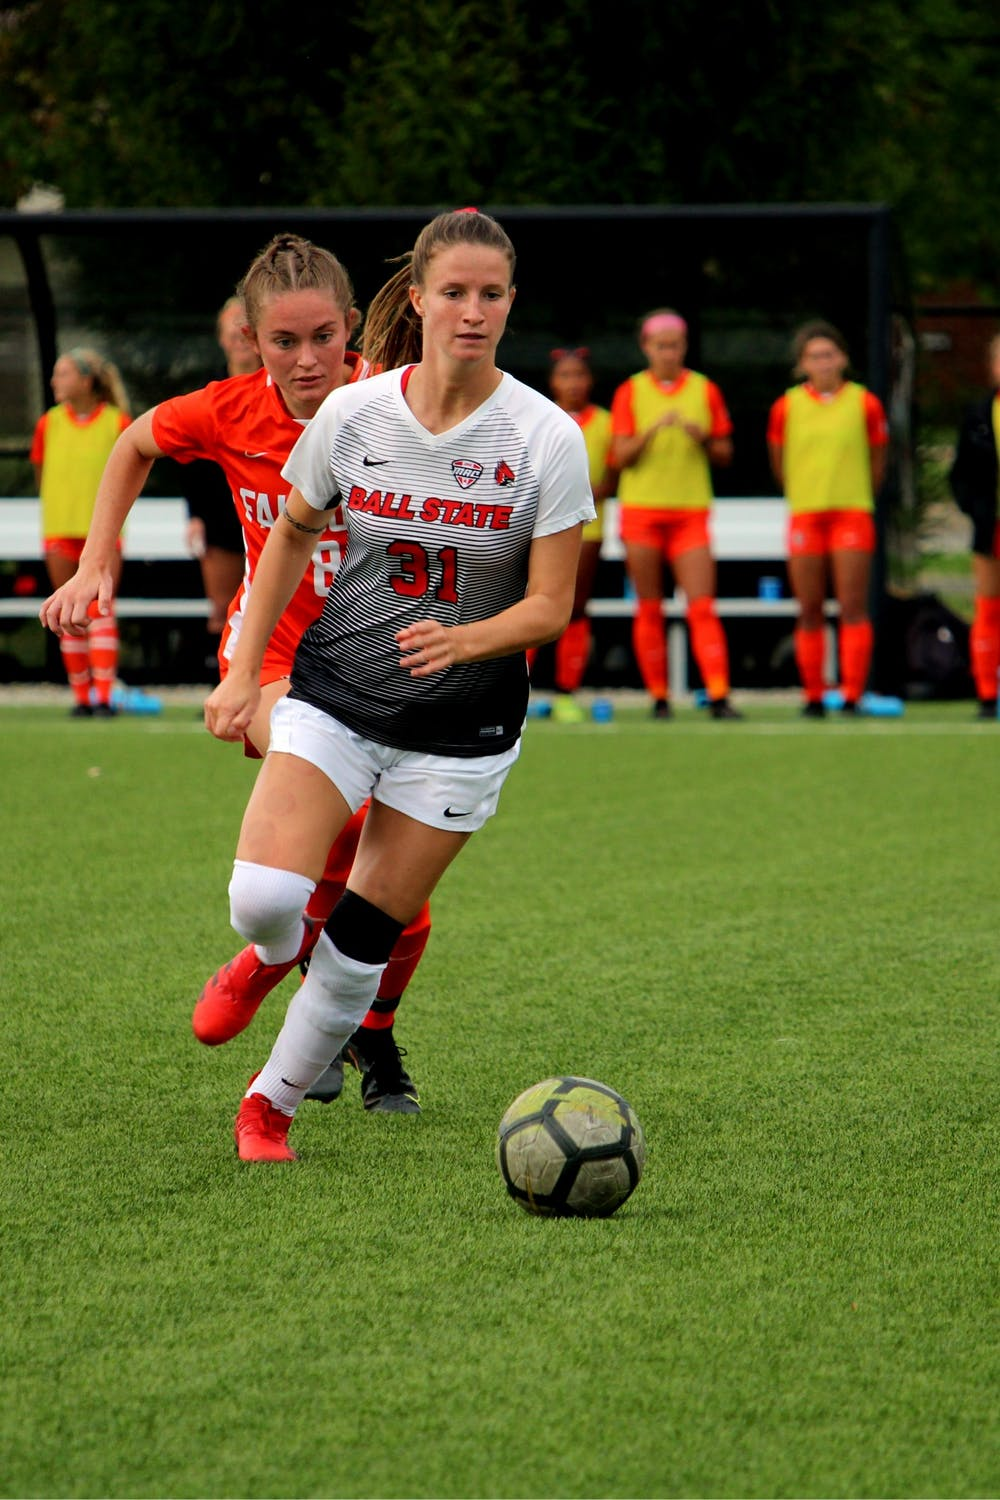 Senior Tatiana Mason goes for the ball agaisnt Bowling Green on Oct. 7, 2021, at Briner Sports Complex in Muncie, IN. Amber Pietz, DN